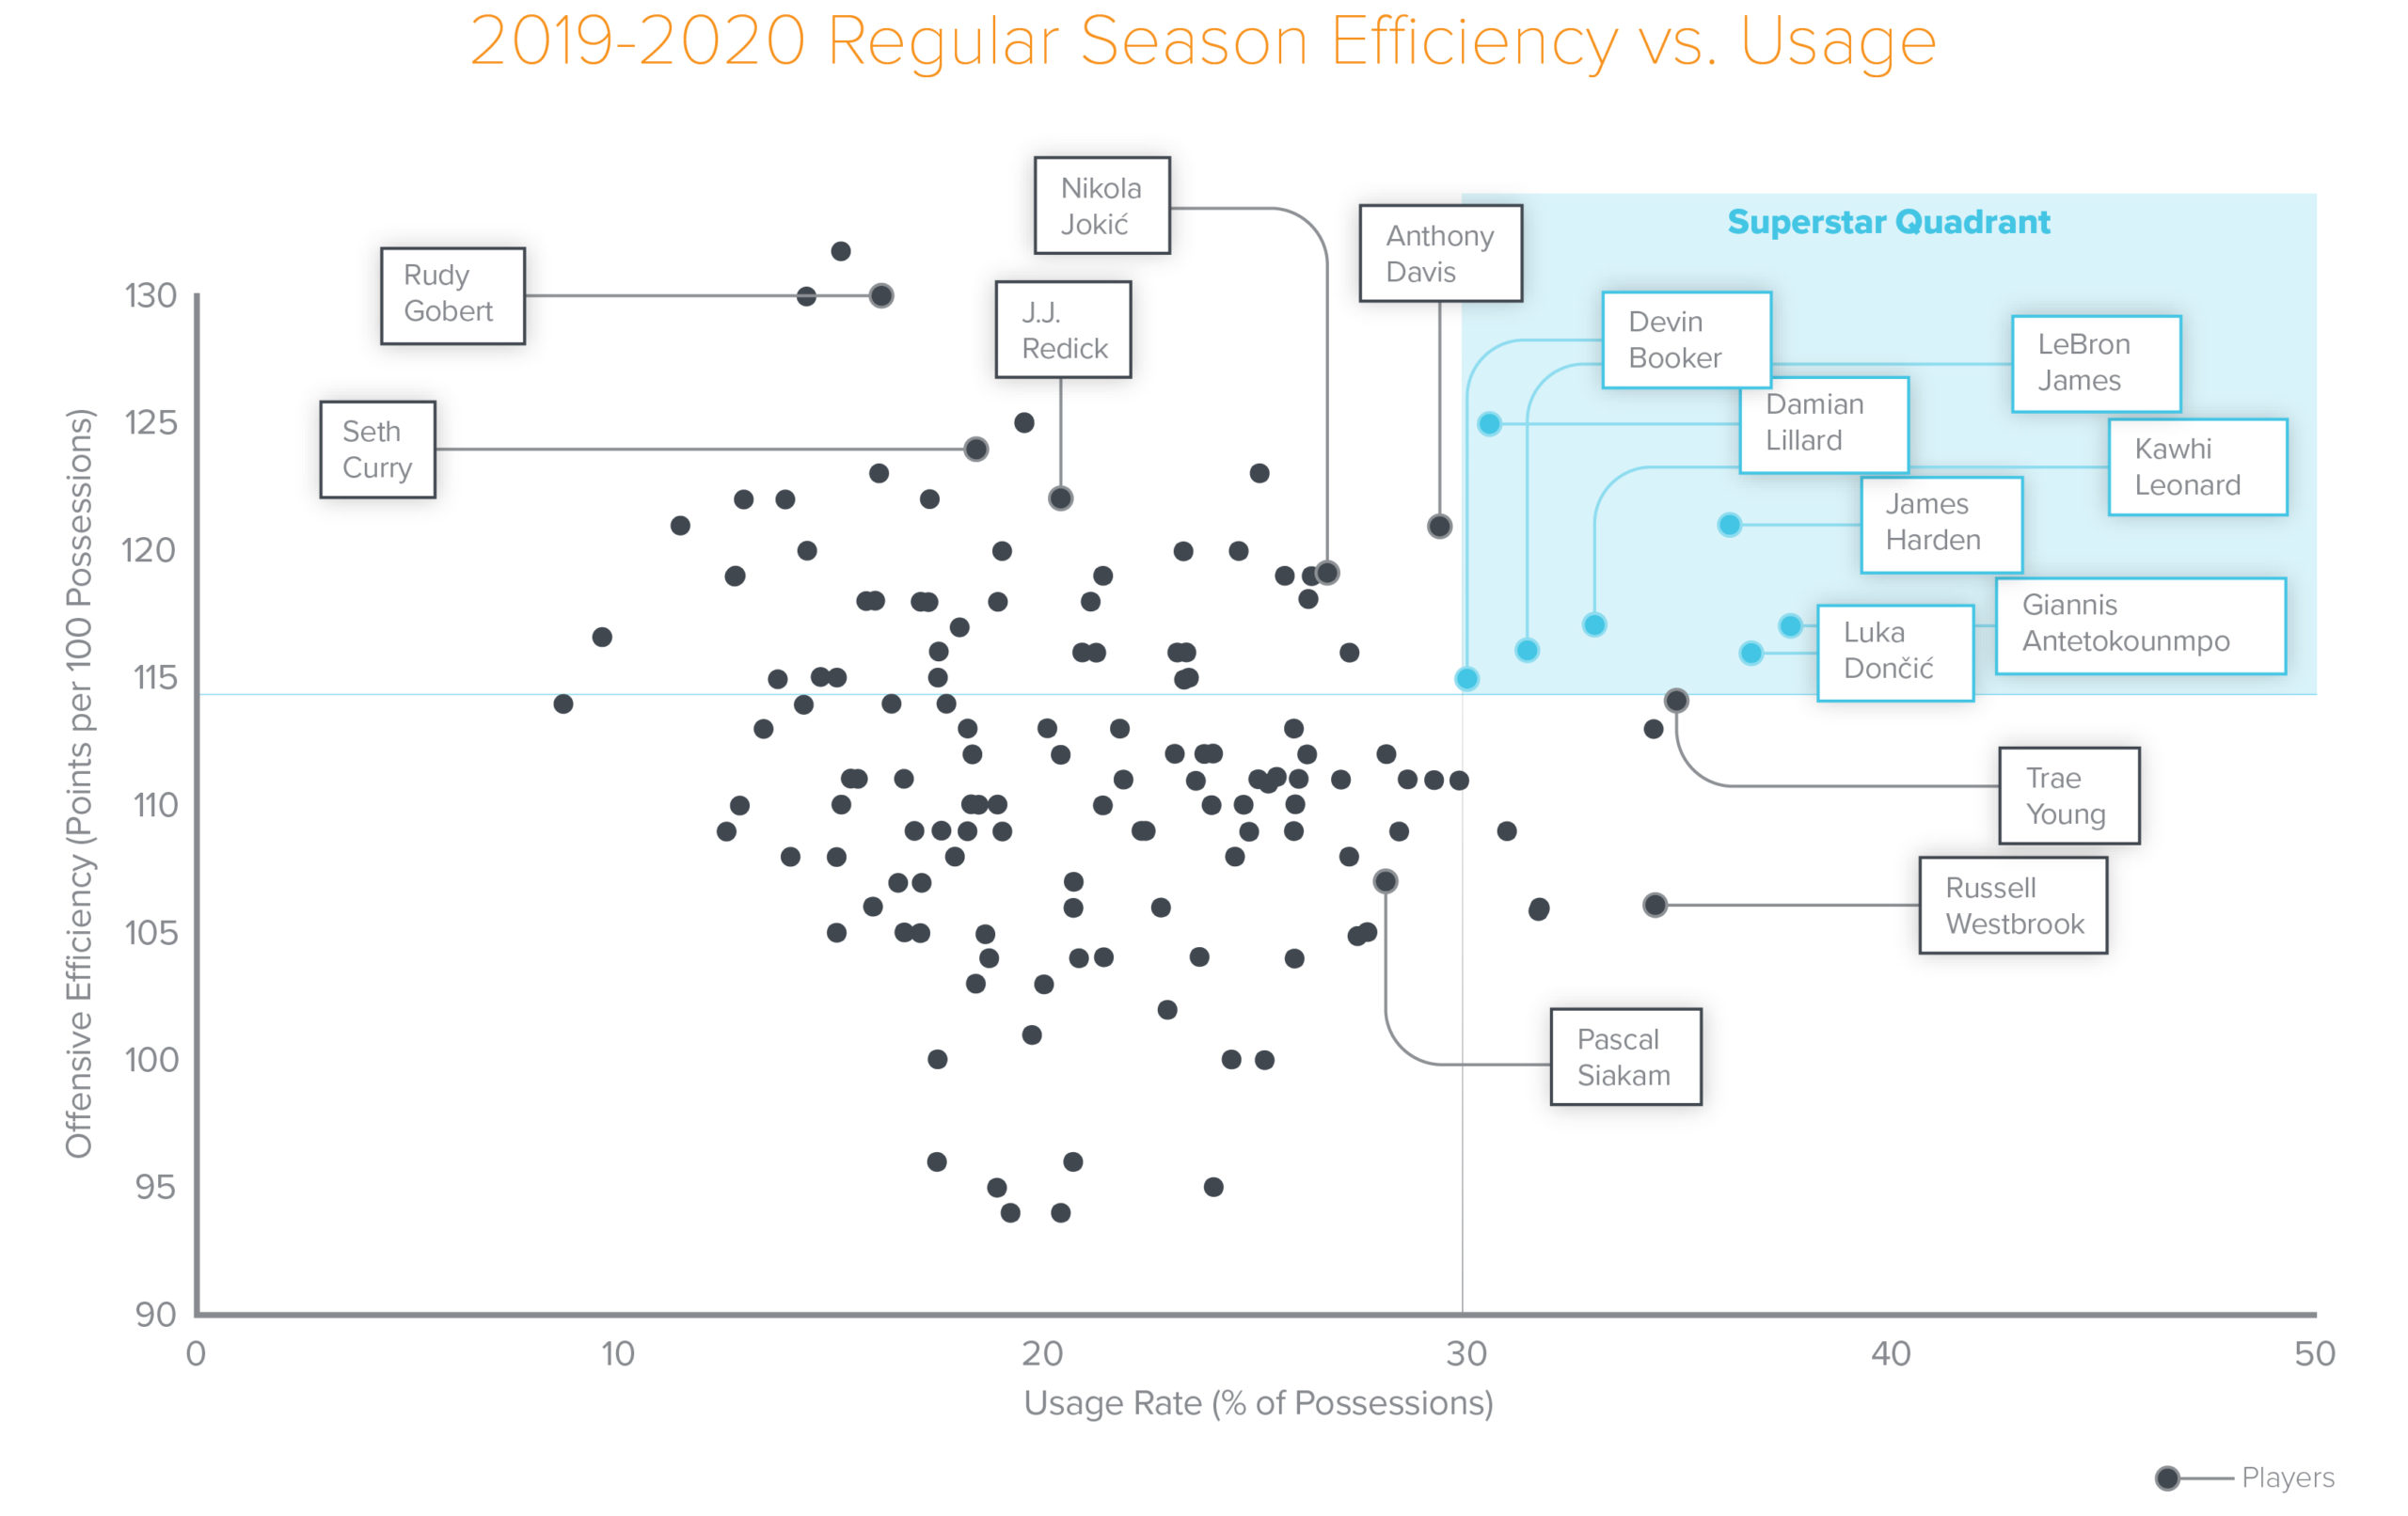 2019-2020 NBA regular season efficiency vs usage